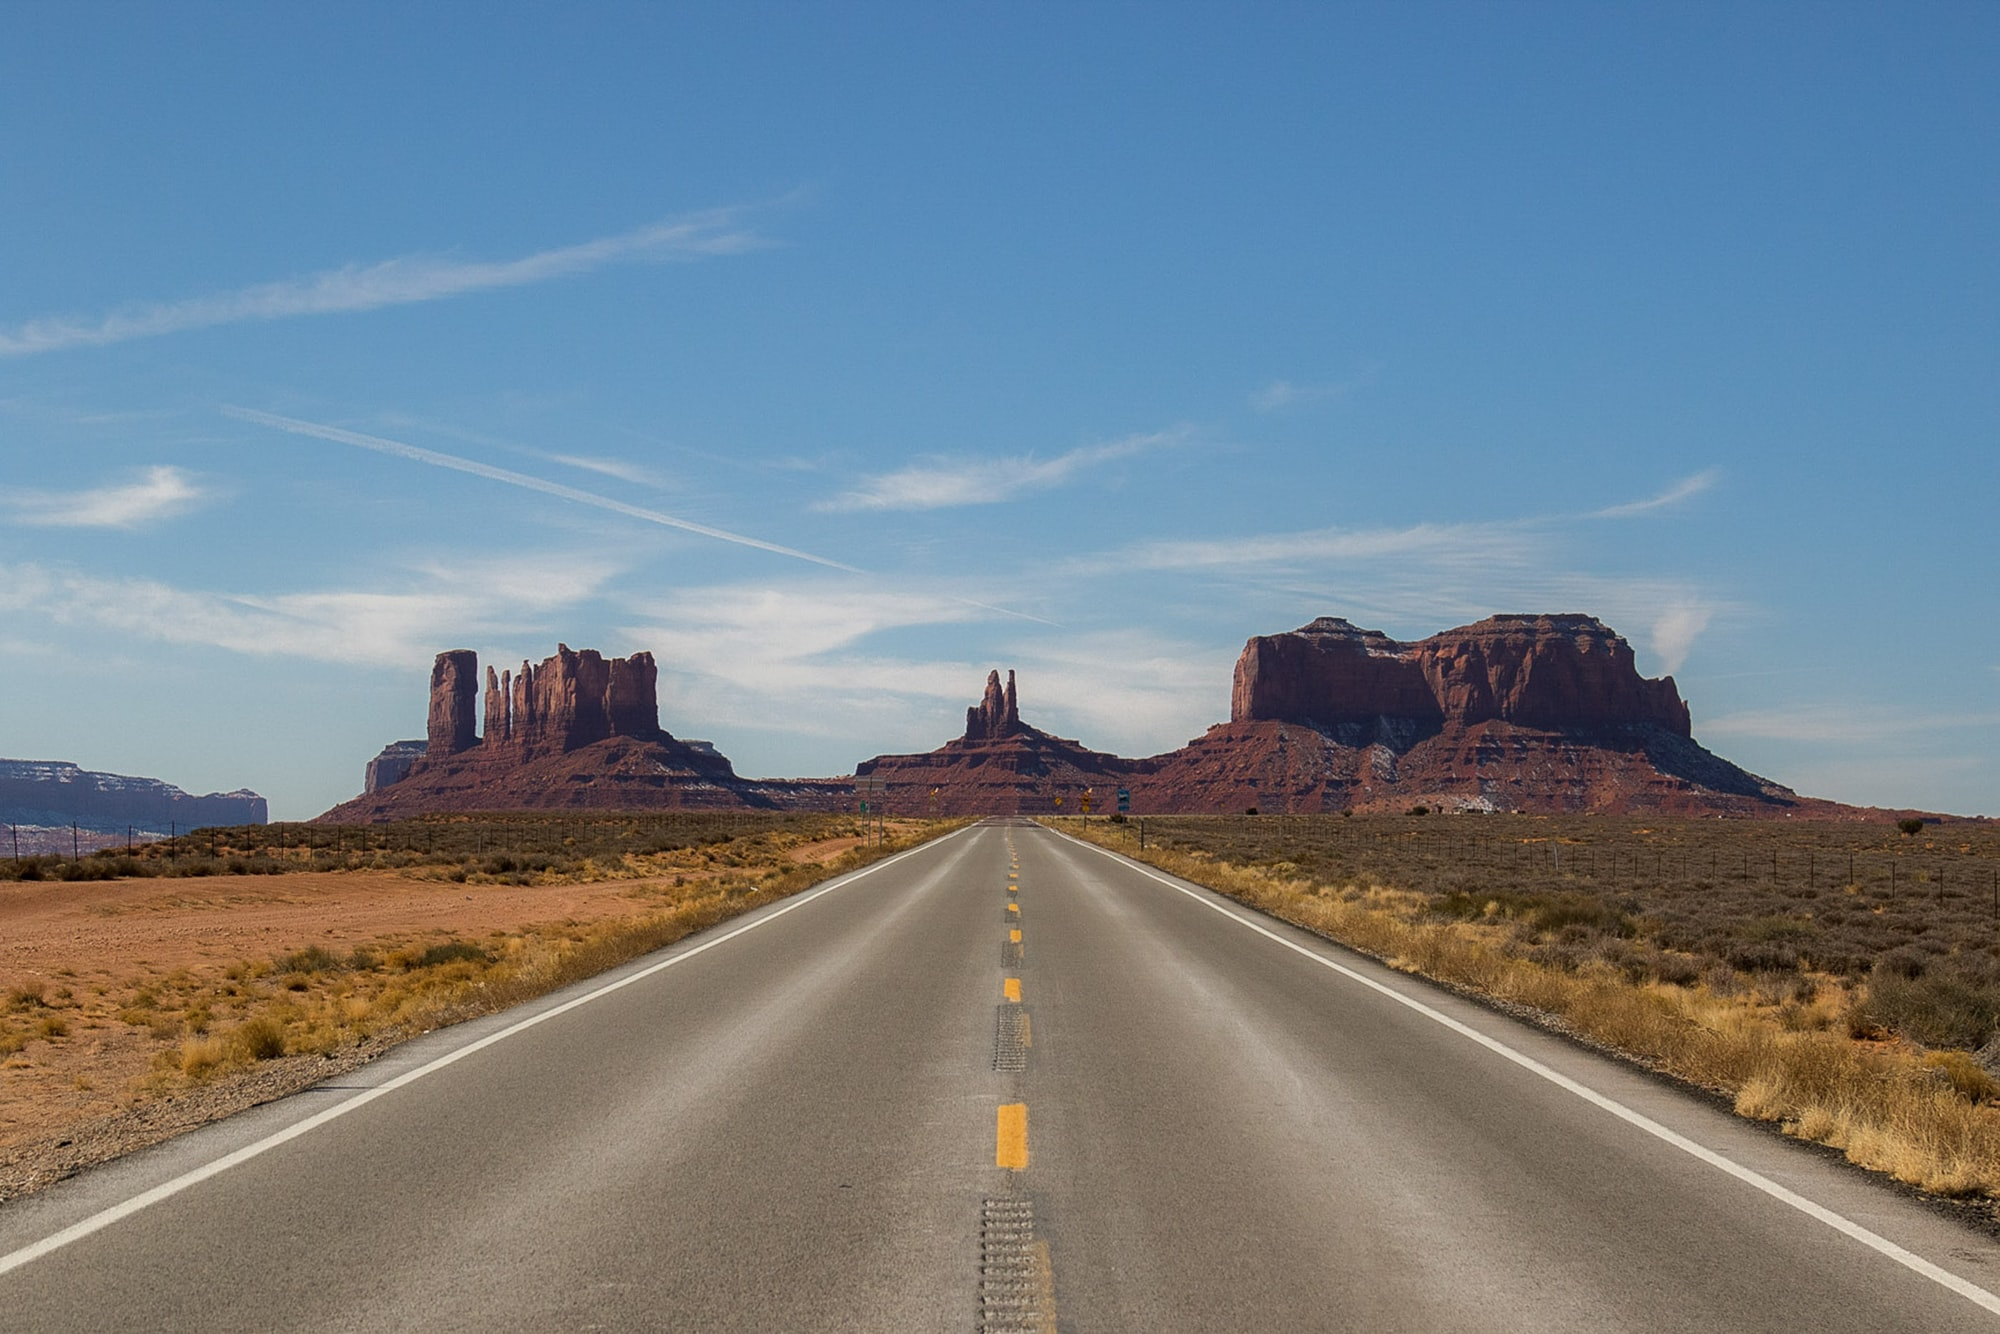 The iconic road to Monument Valley